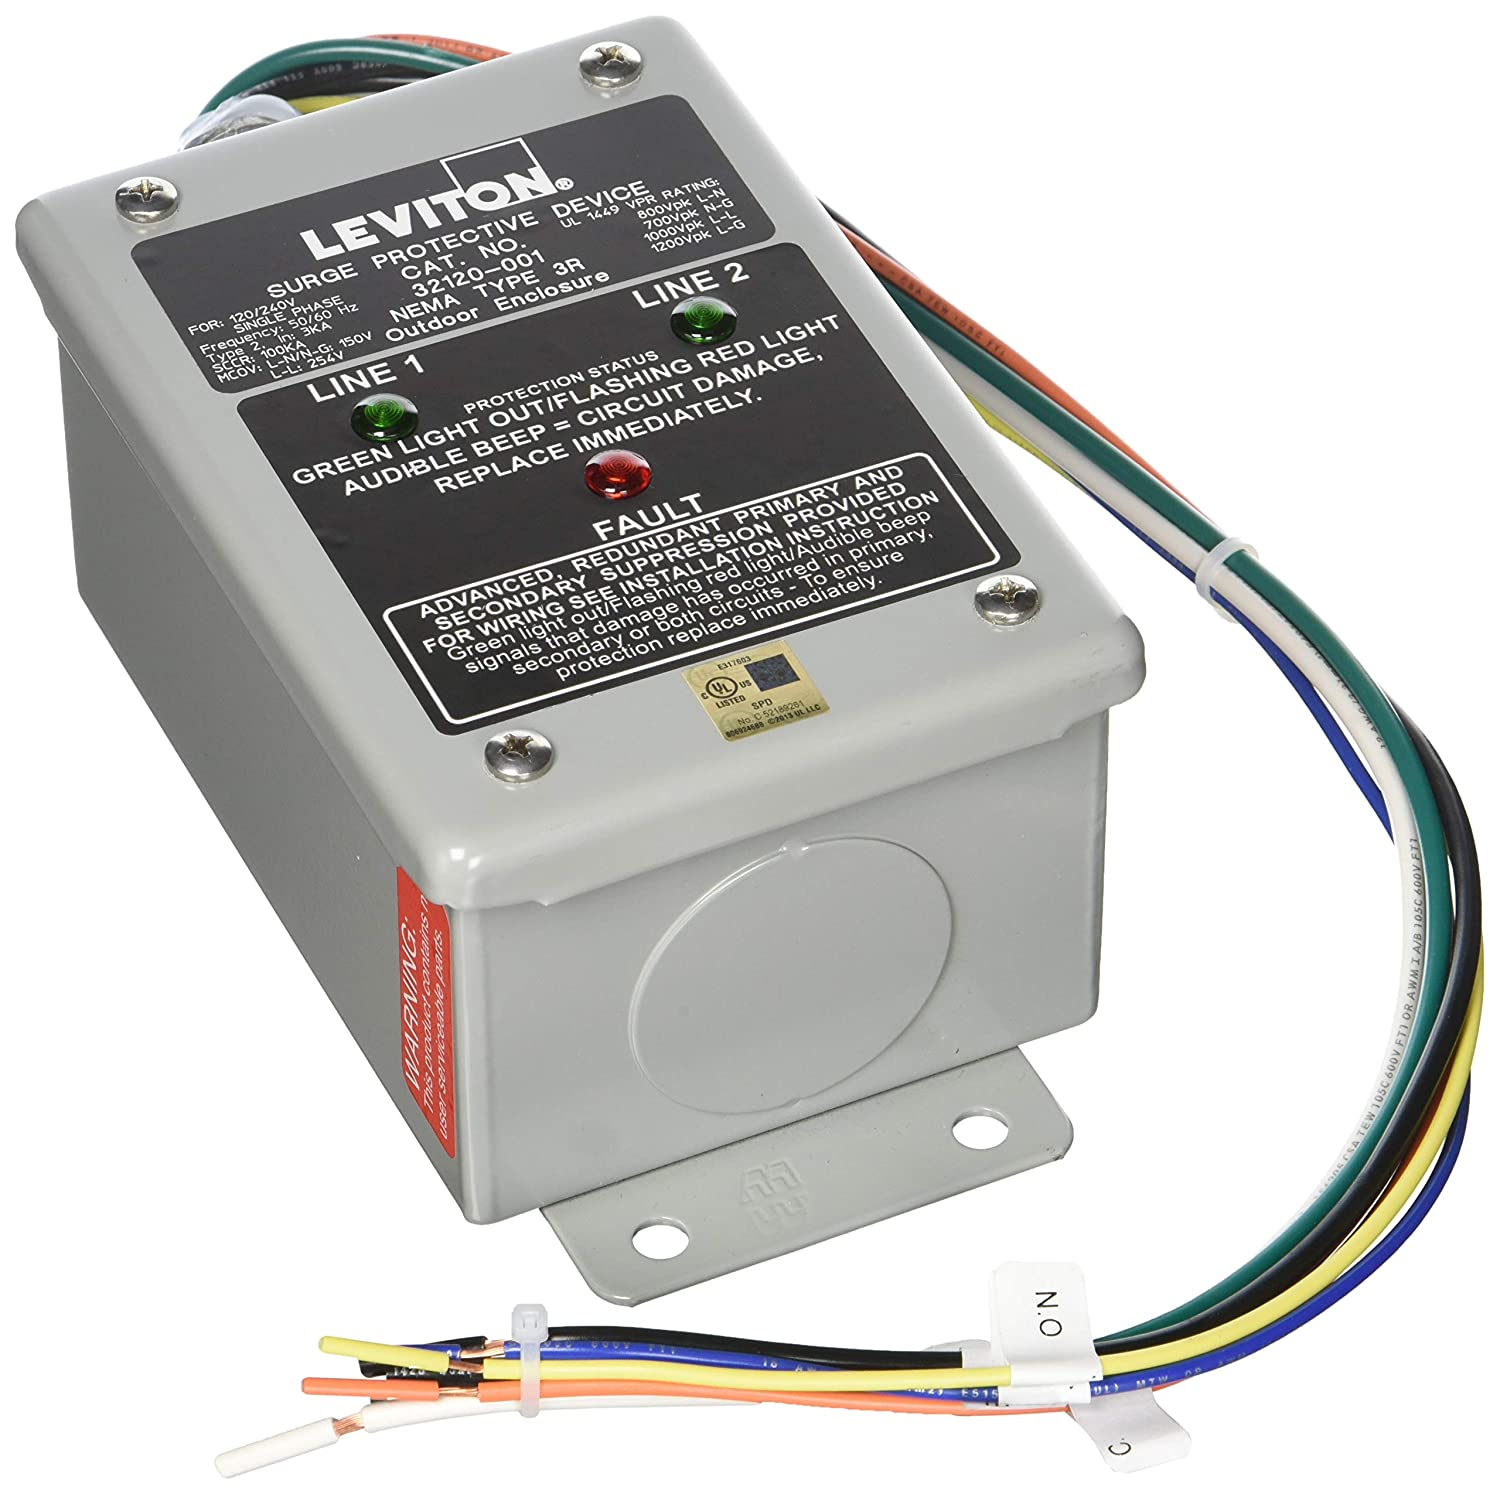 Leviton 32120 1 120 240 Volt Single Phase Surge Panel Secondary Electrical Wiring Dhc And X10 Compatible 80ka L N Max Current Home Improvement